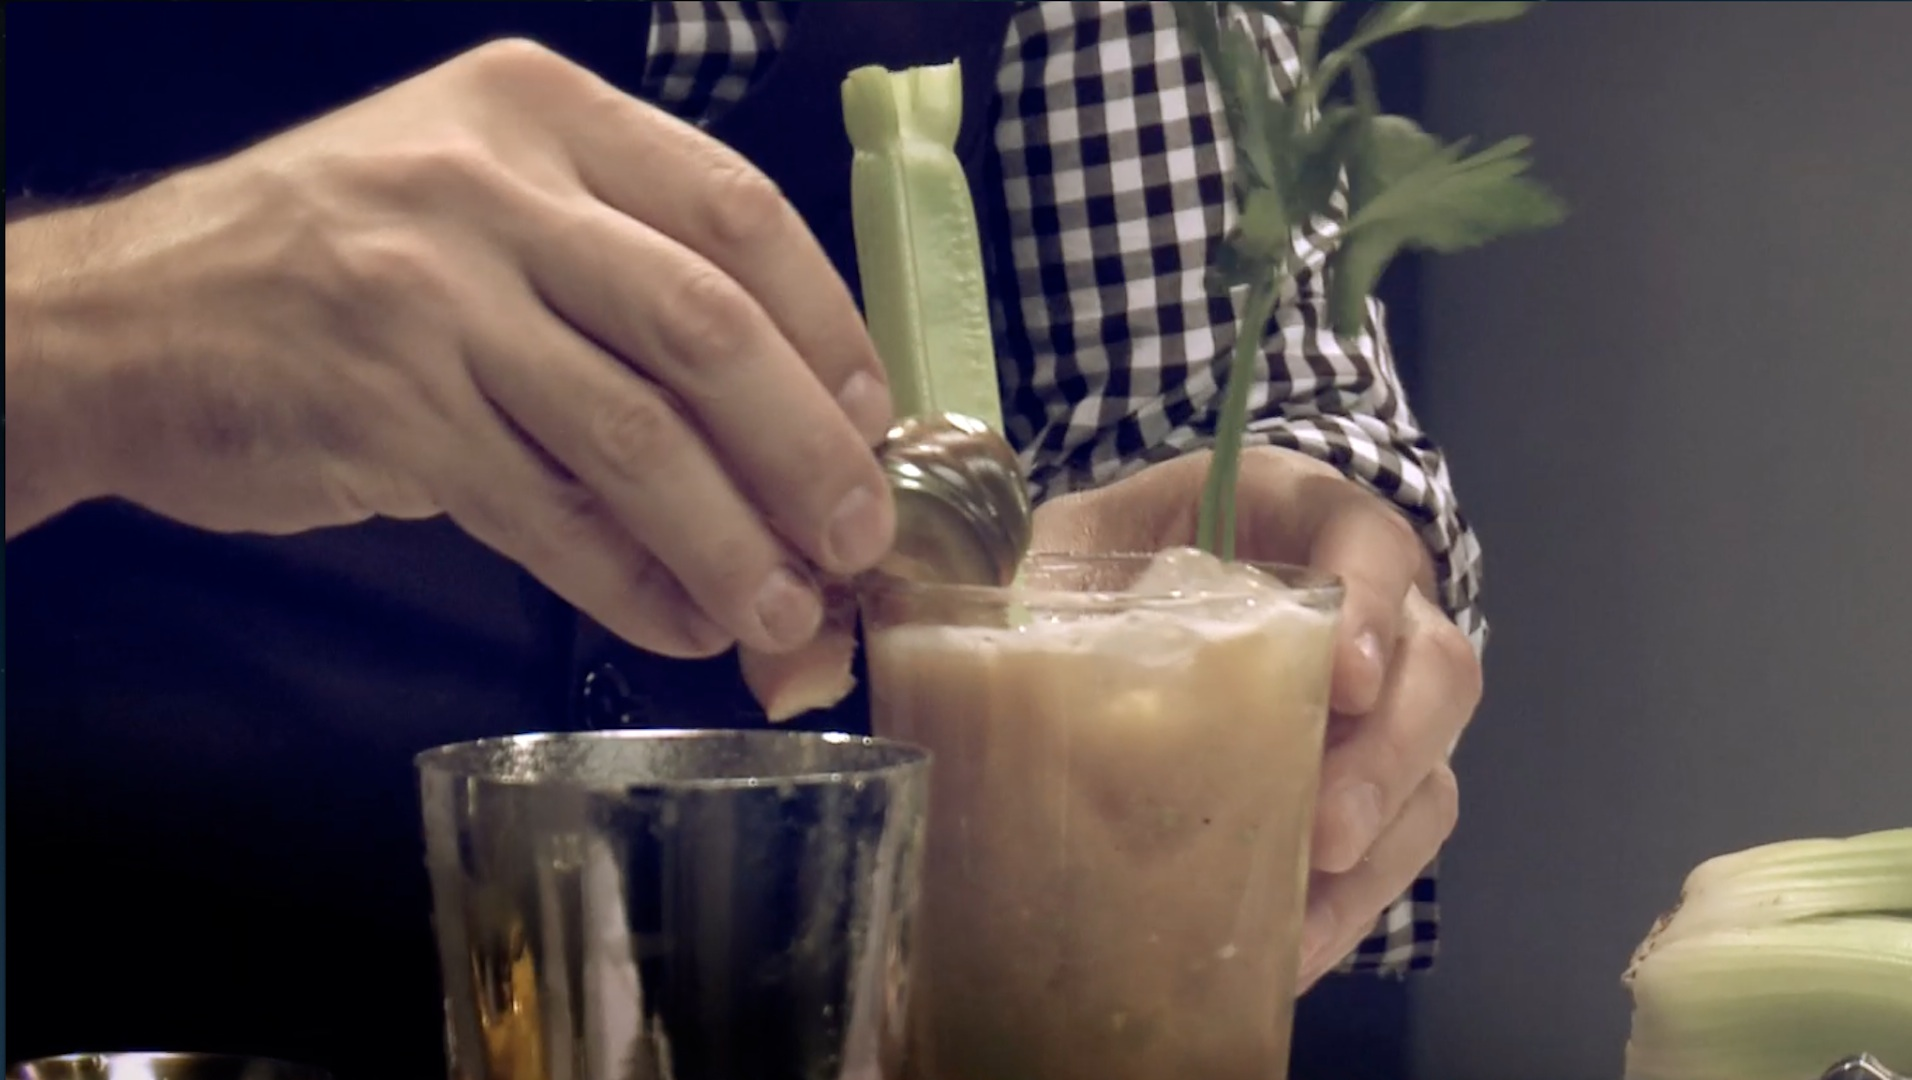 The Farmer's Market Bloody Mary Recipe